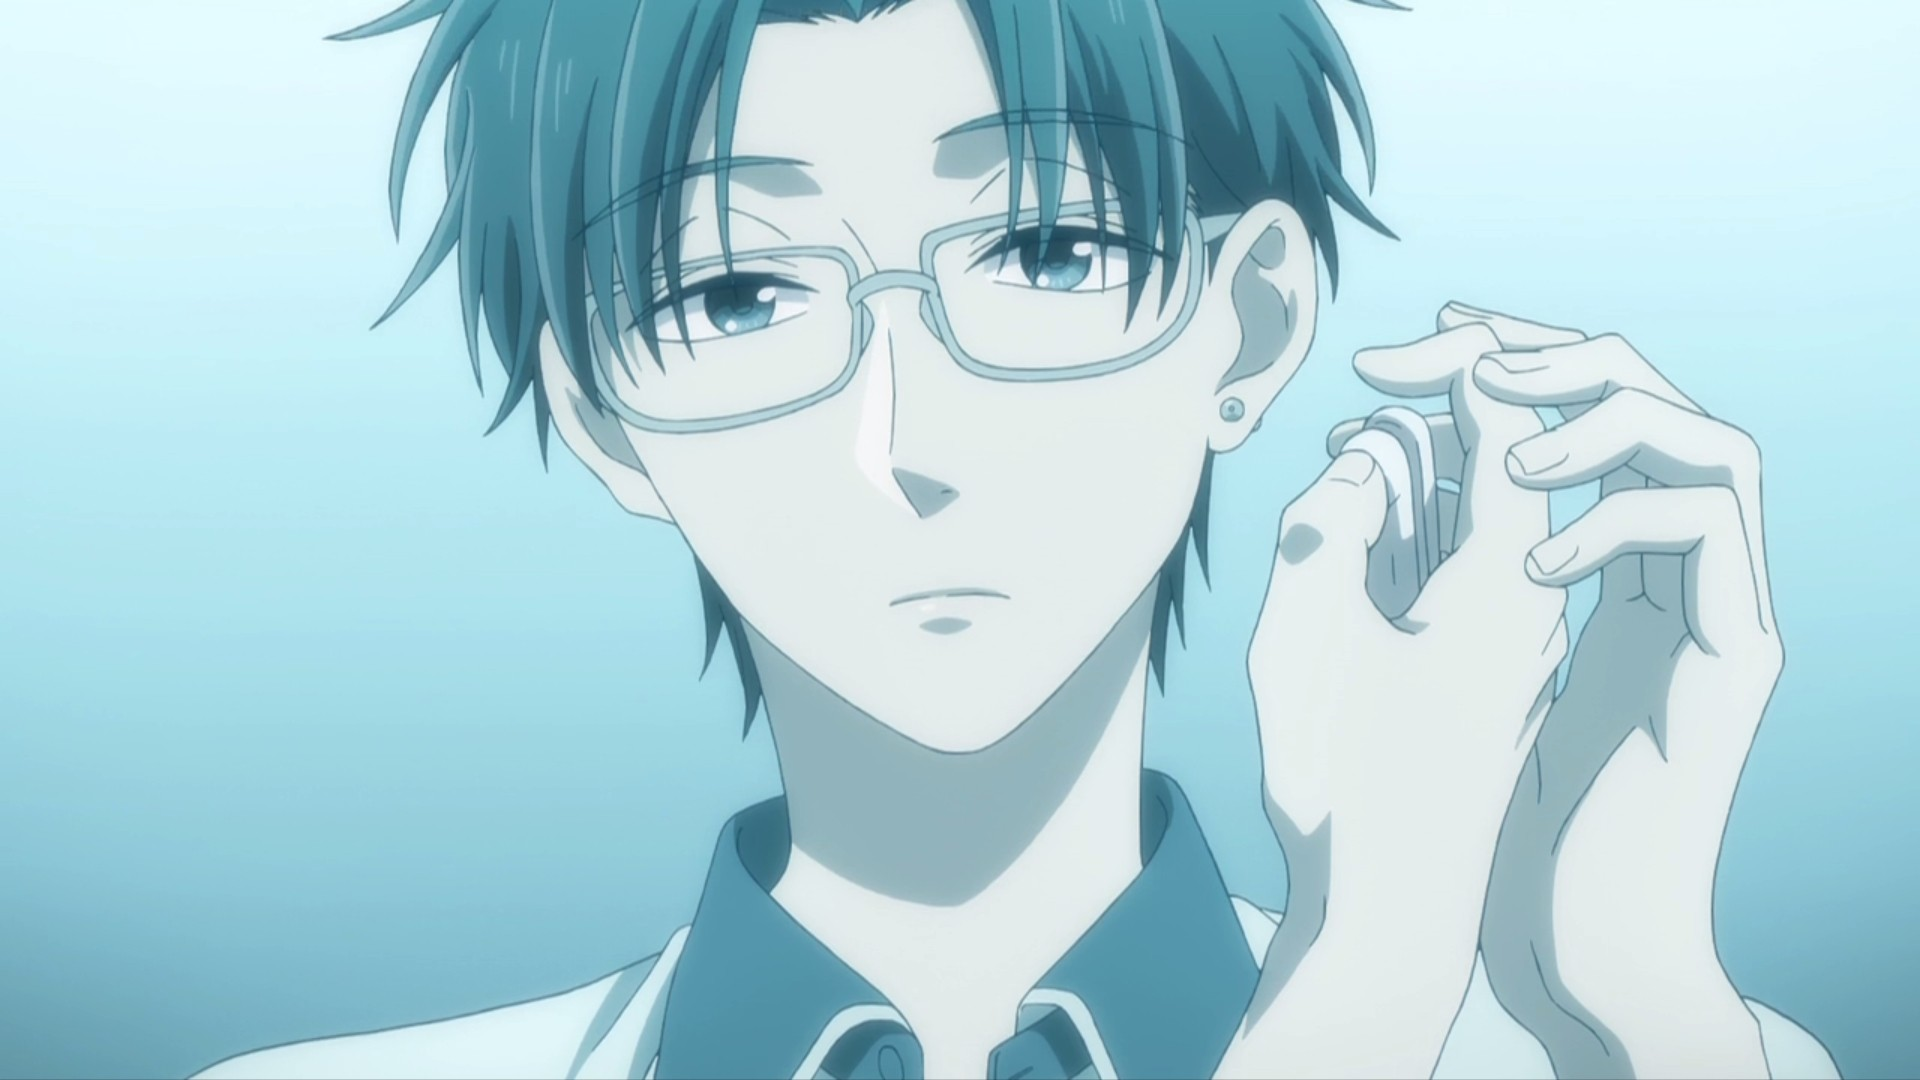 Anime Guy With Glasses HD Wallpaper